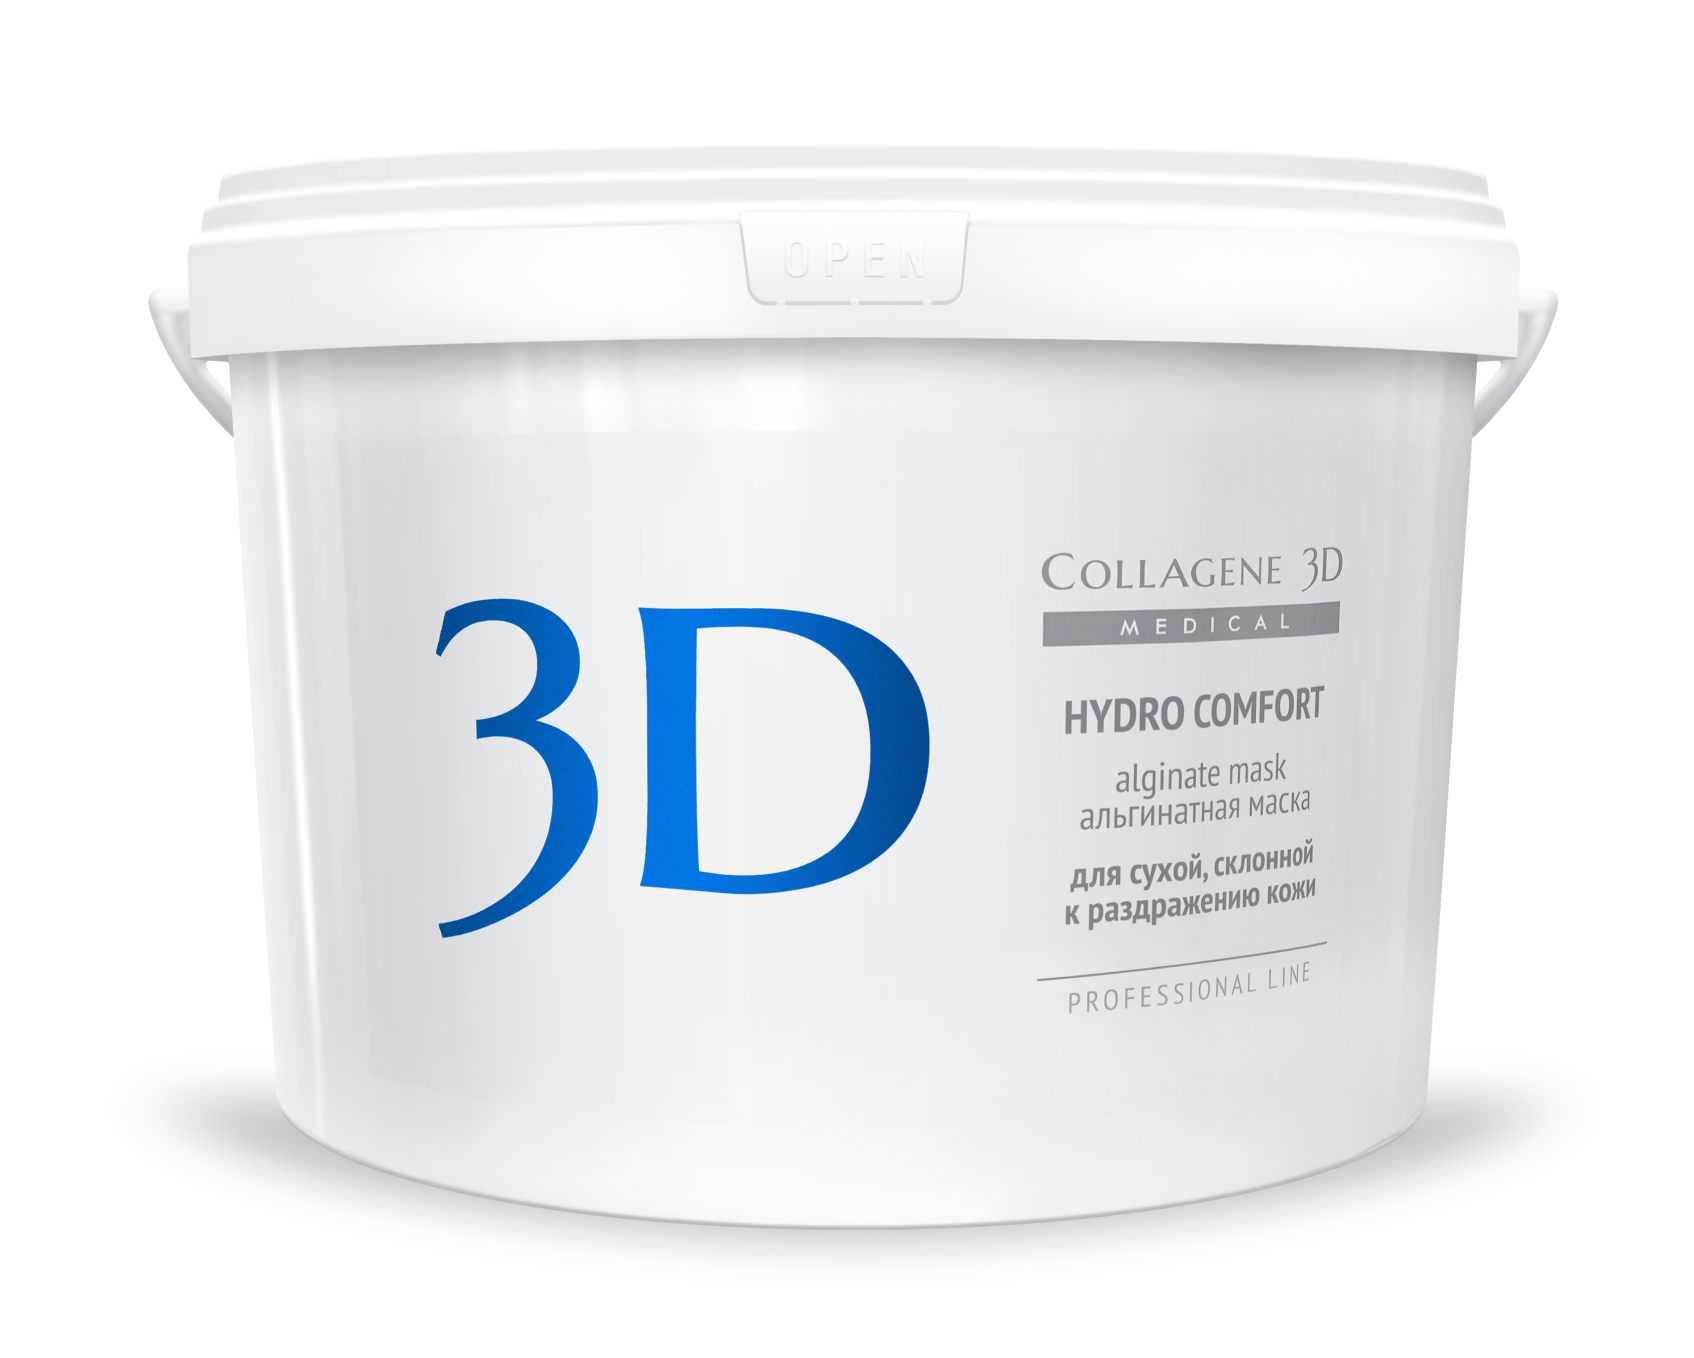 MEDICAL COLLAGENE 3D Маска альгинатная с экстрактом алое вера для лица и тела Hydro Comfort 1200гр